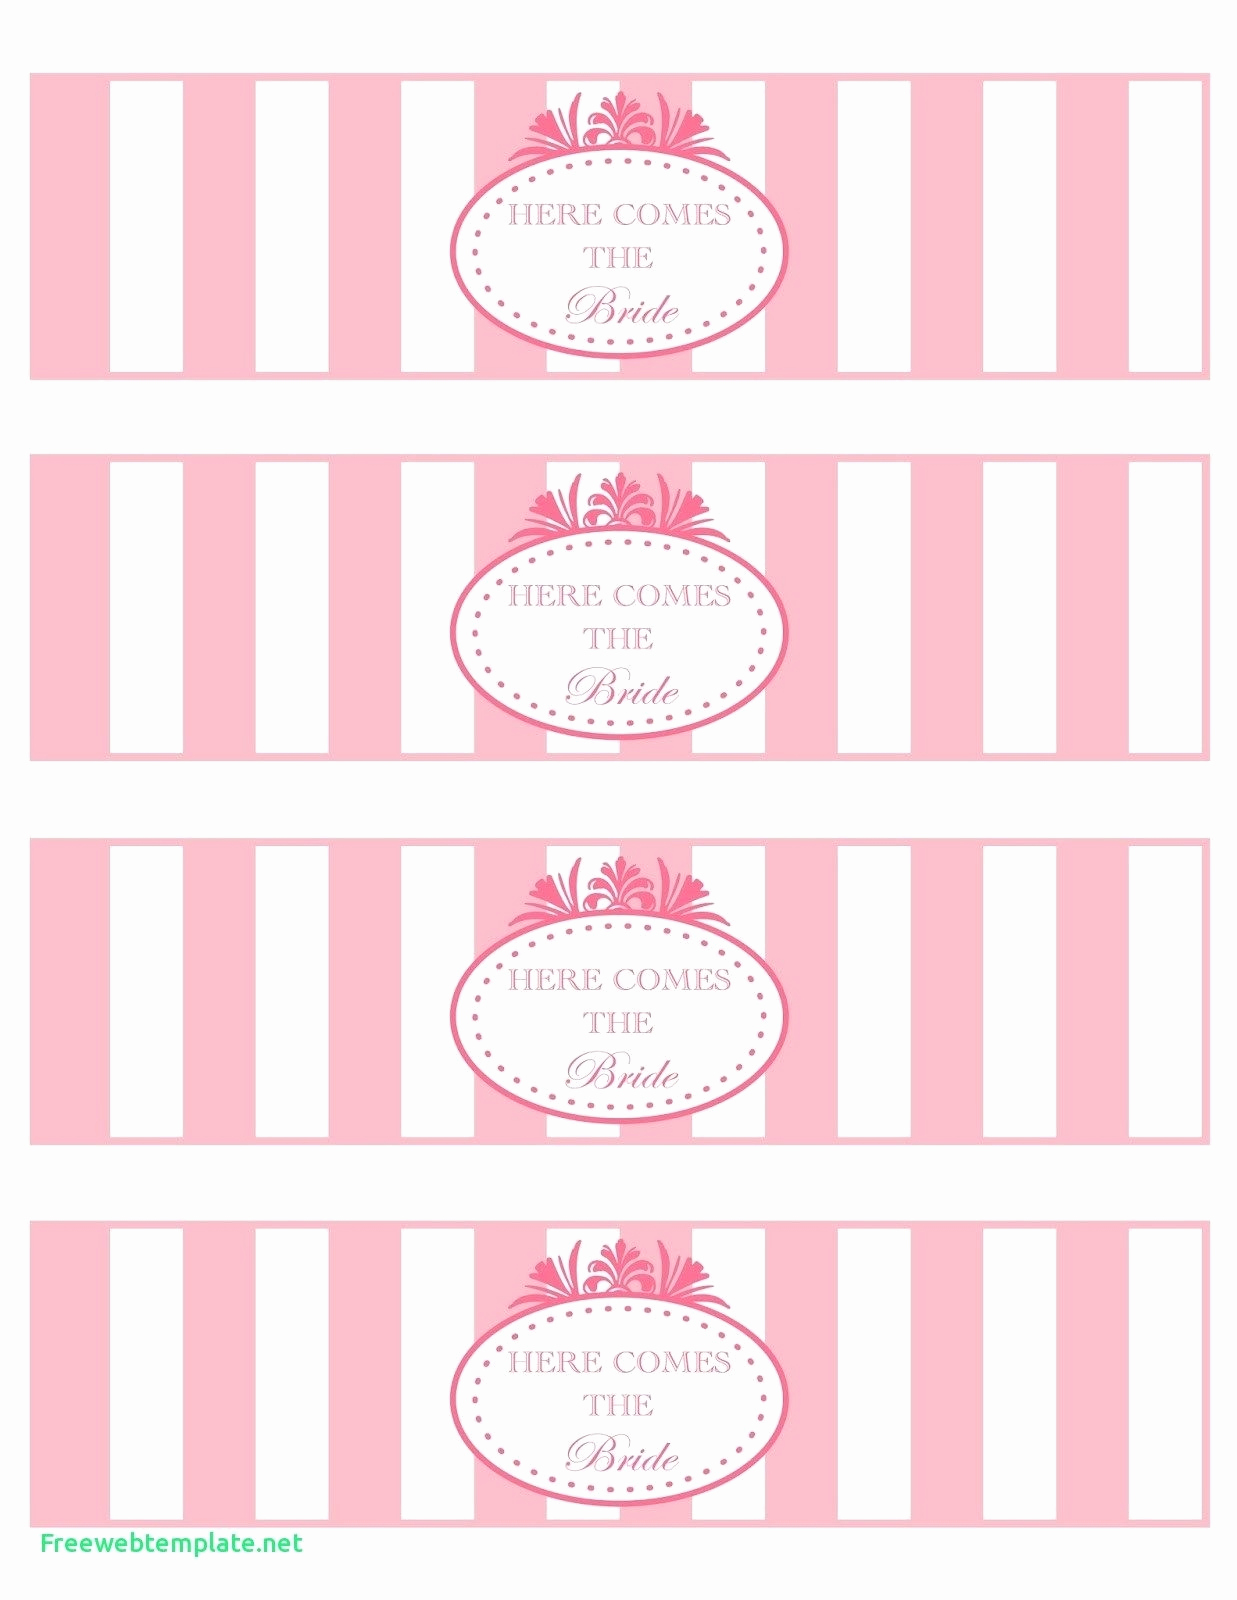 Printable Water Bottle Labels Lovely Printable Water Bottle Labels Free Templates